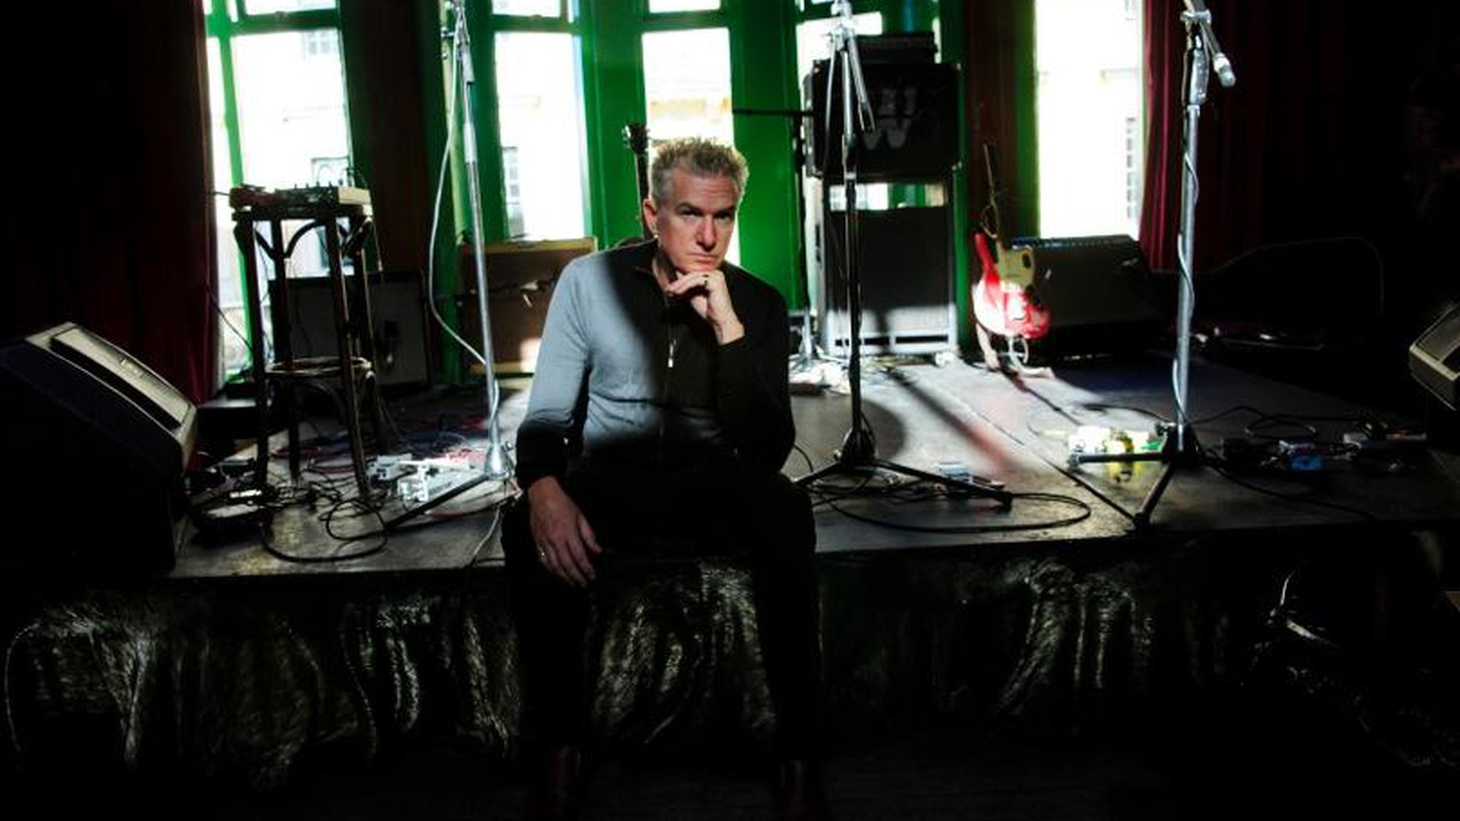 """Mick Harvey produced PJ Harvey's award-winning album """"Let England Shake"""" and she returns the favor by providing backing vocals on Today's Top Tune, """"Glorious."""""""